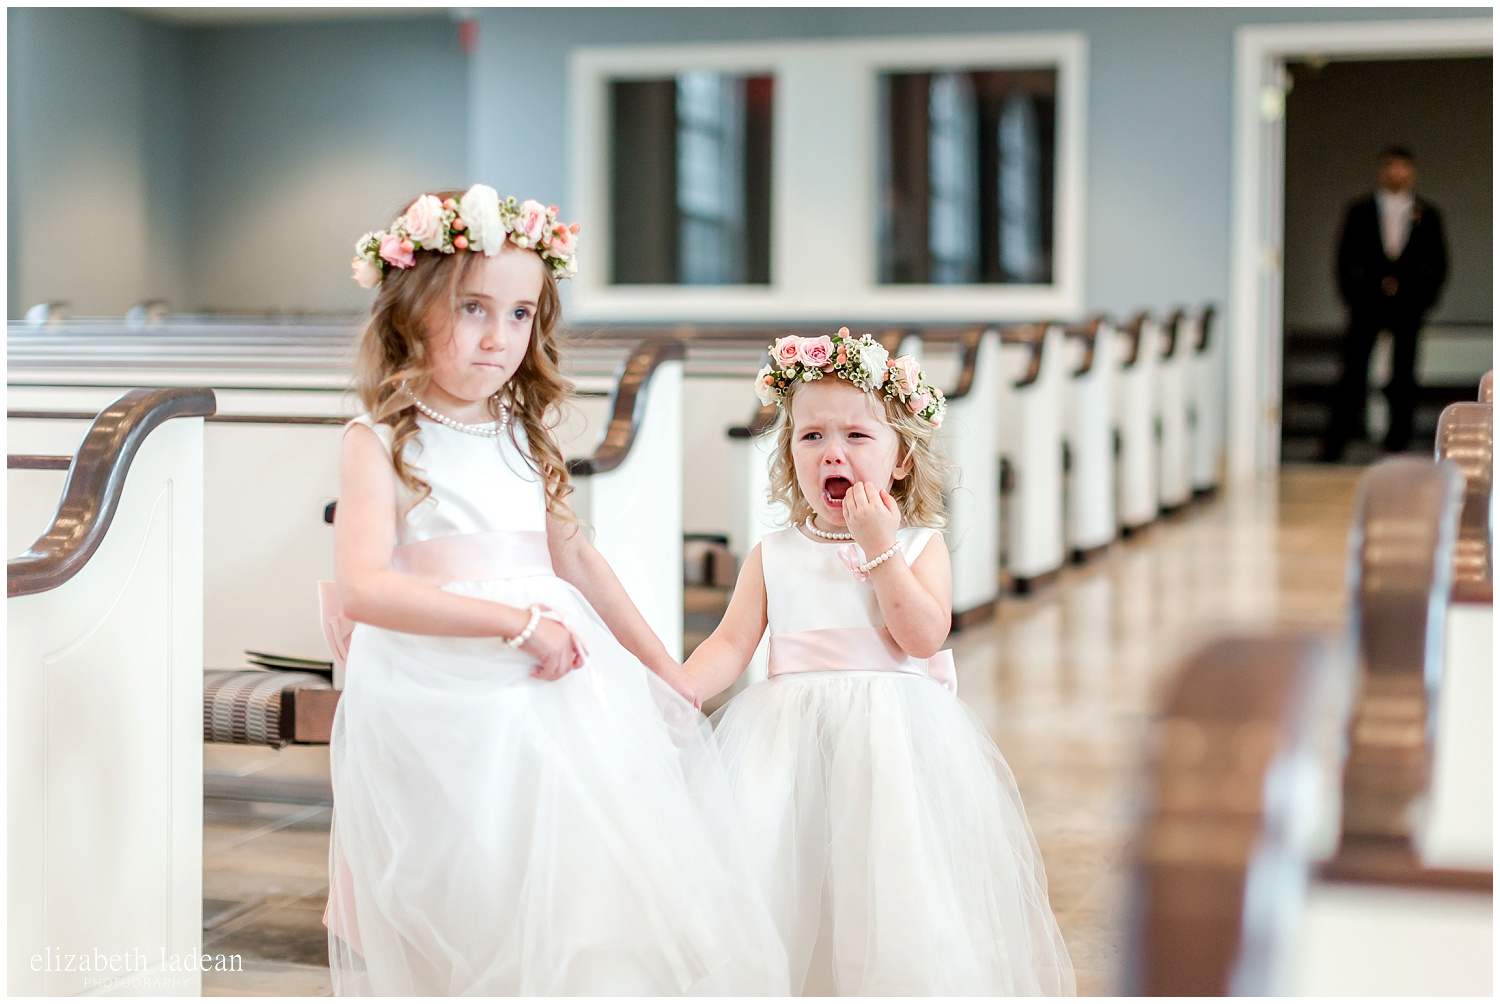 -behind-the-scenes-of-a-wedding-photographer-2018-elizabeth-ladean-photography-photo_3421.jpg